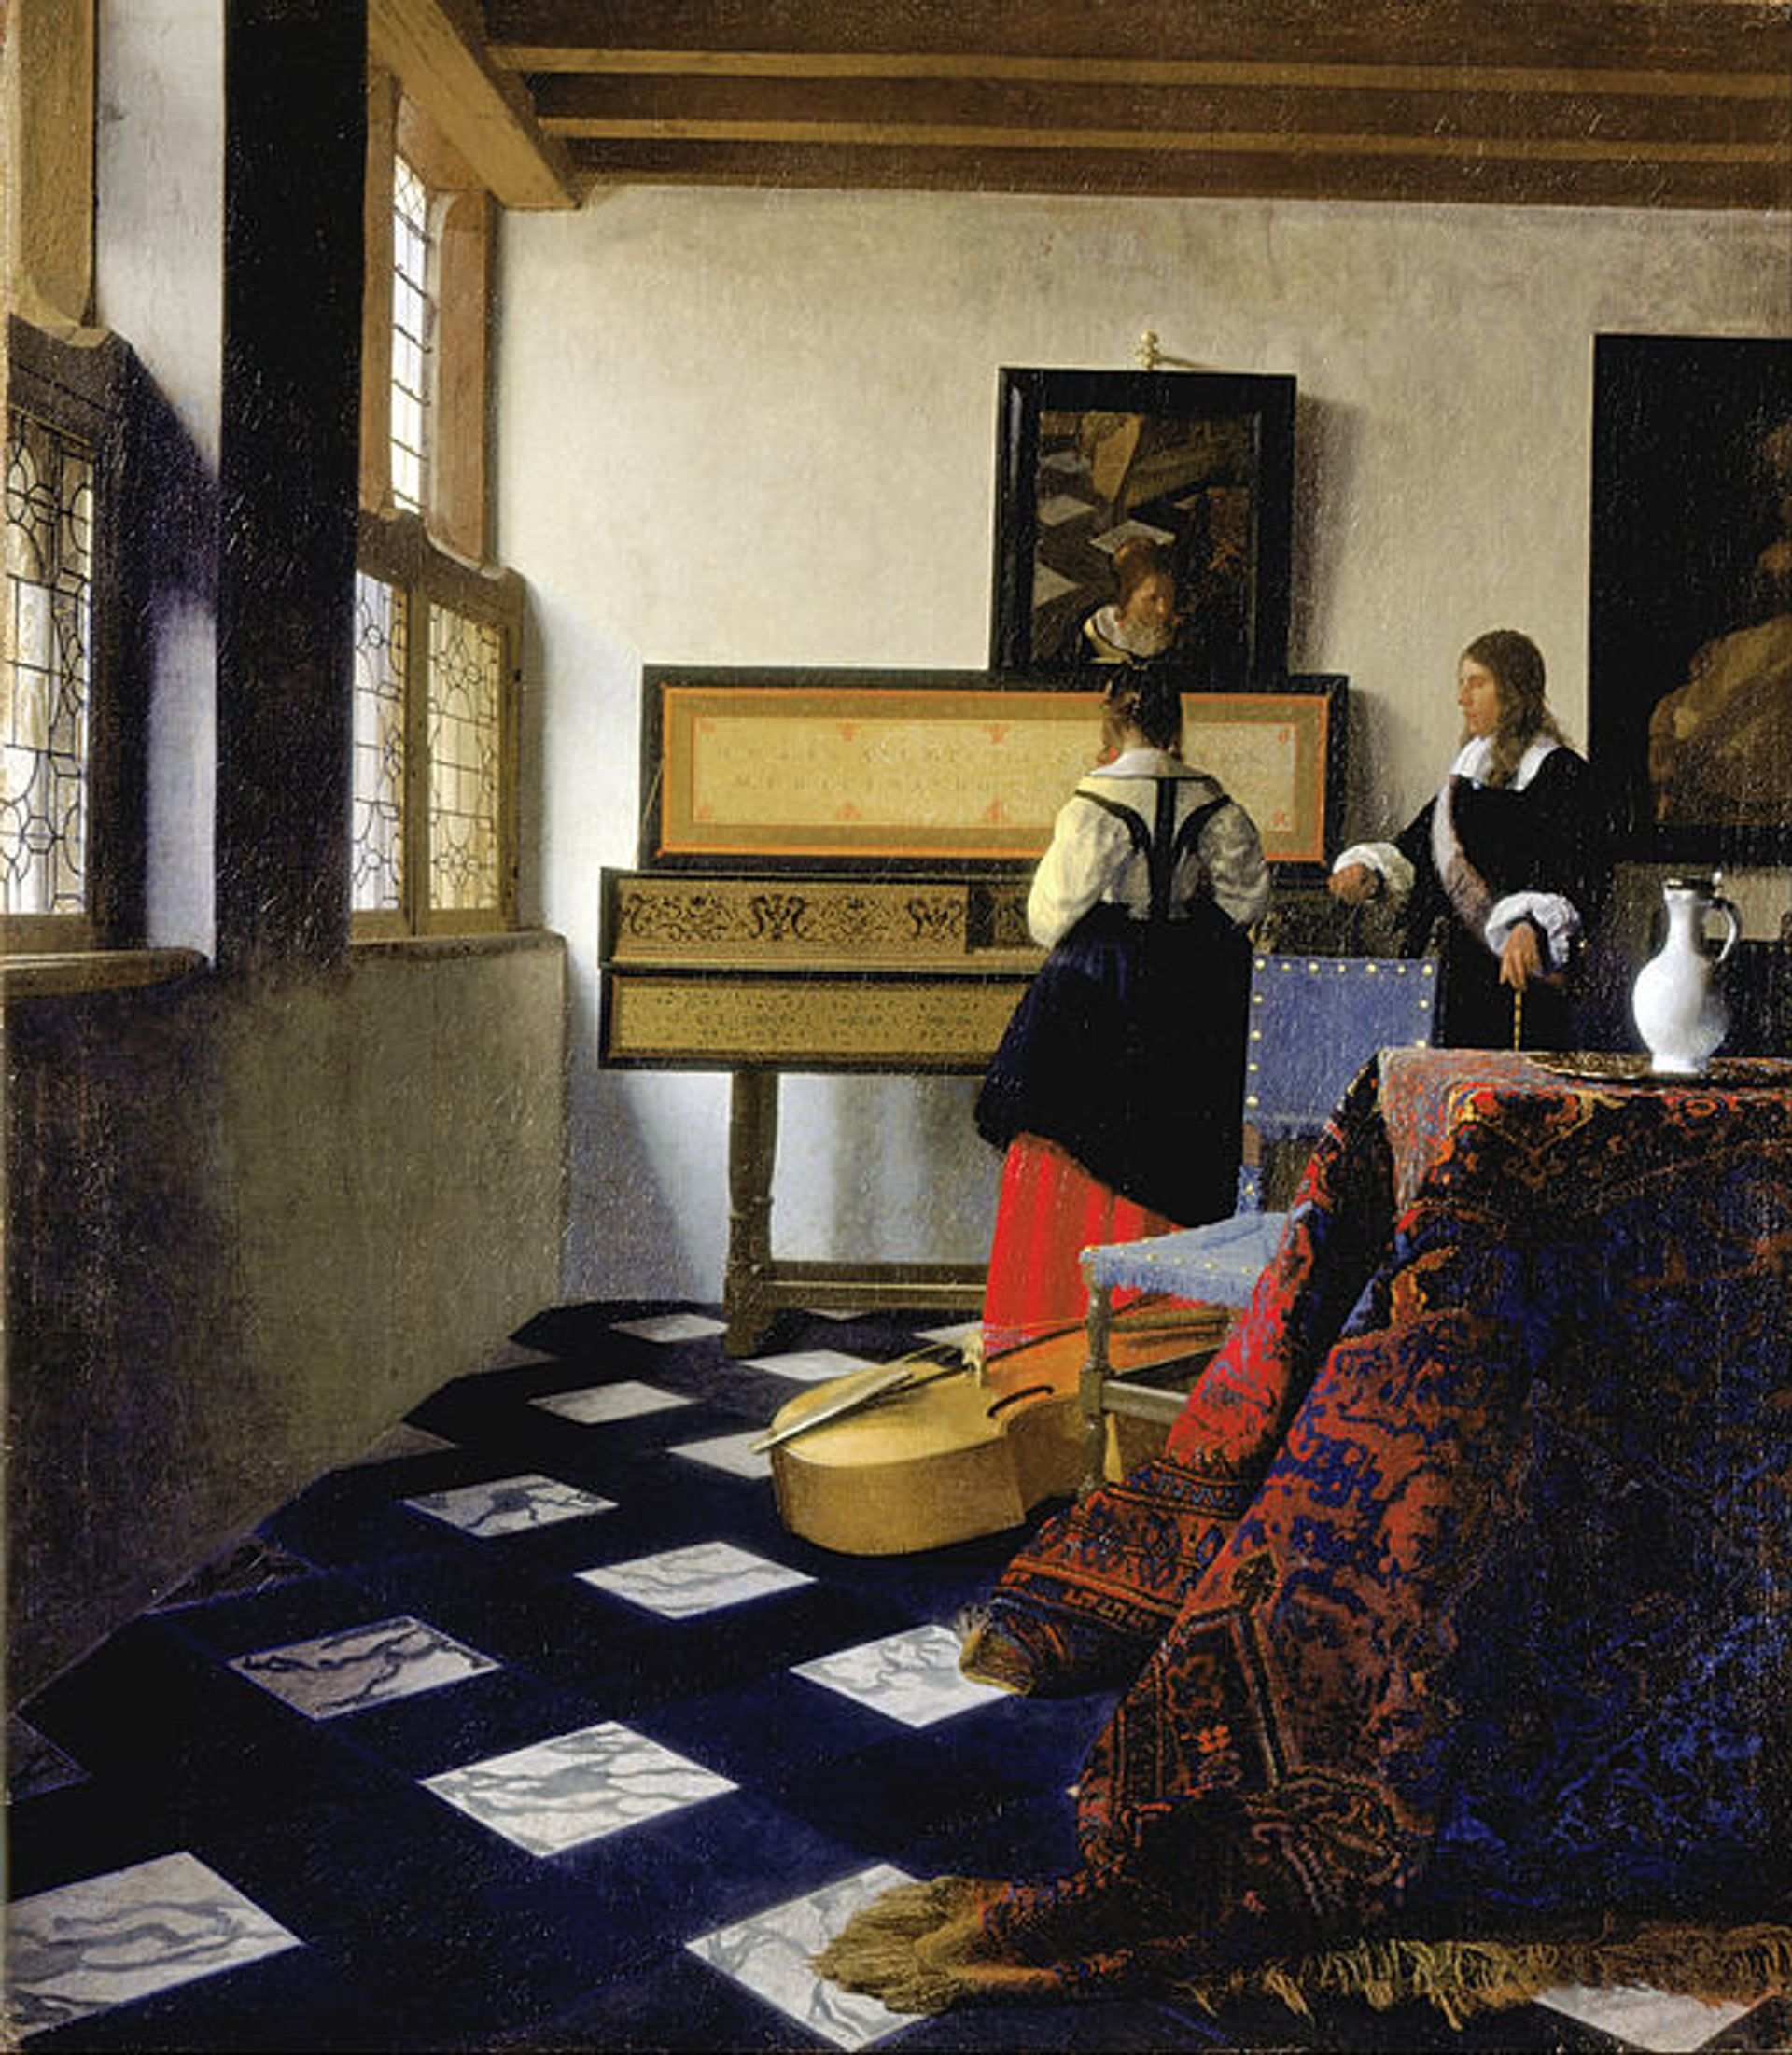 Johannes Vermeer's The Music Lesson (1662–65) is one of 65 works from the Royal Collection to feature in an upcoming exhibition at the Queen's Gallery The Royal Collection